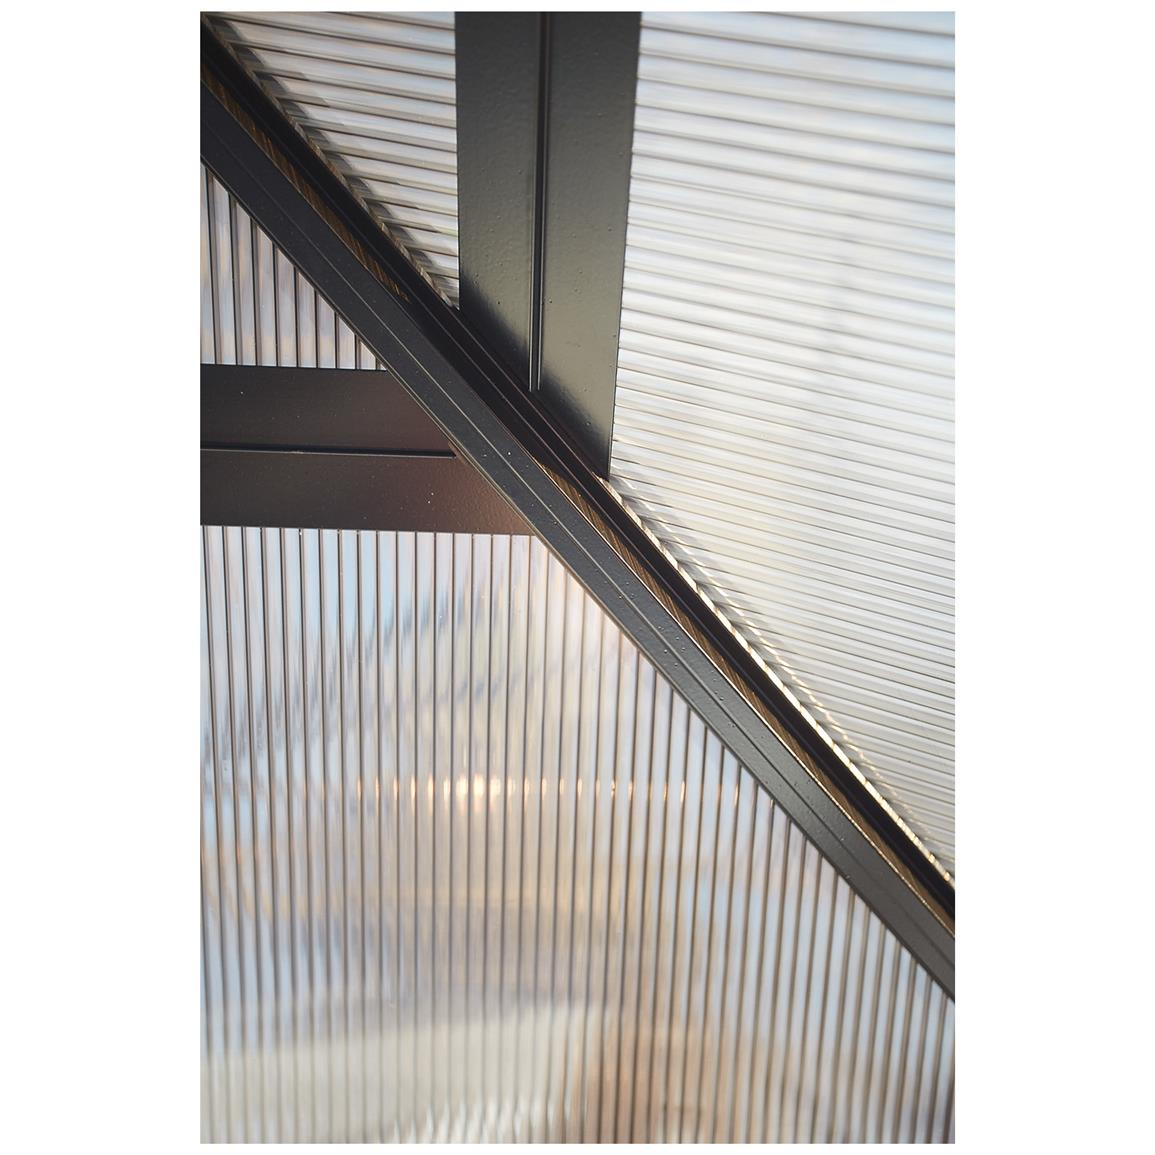 Aluminum roof beams with polycarbonate panels